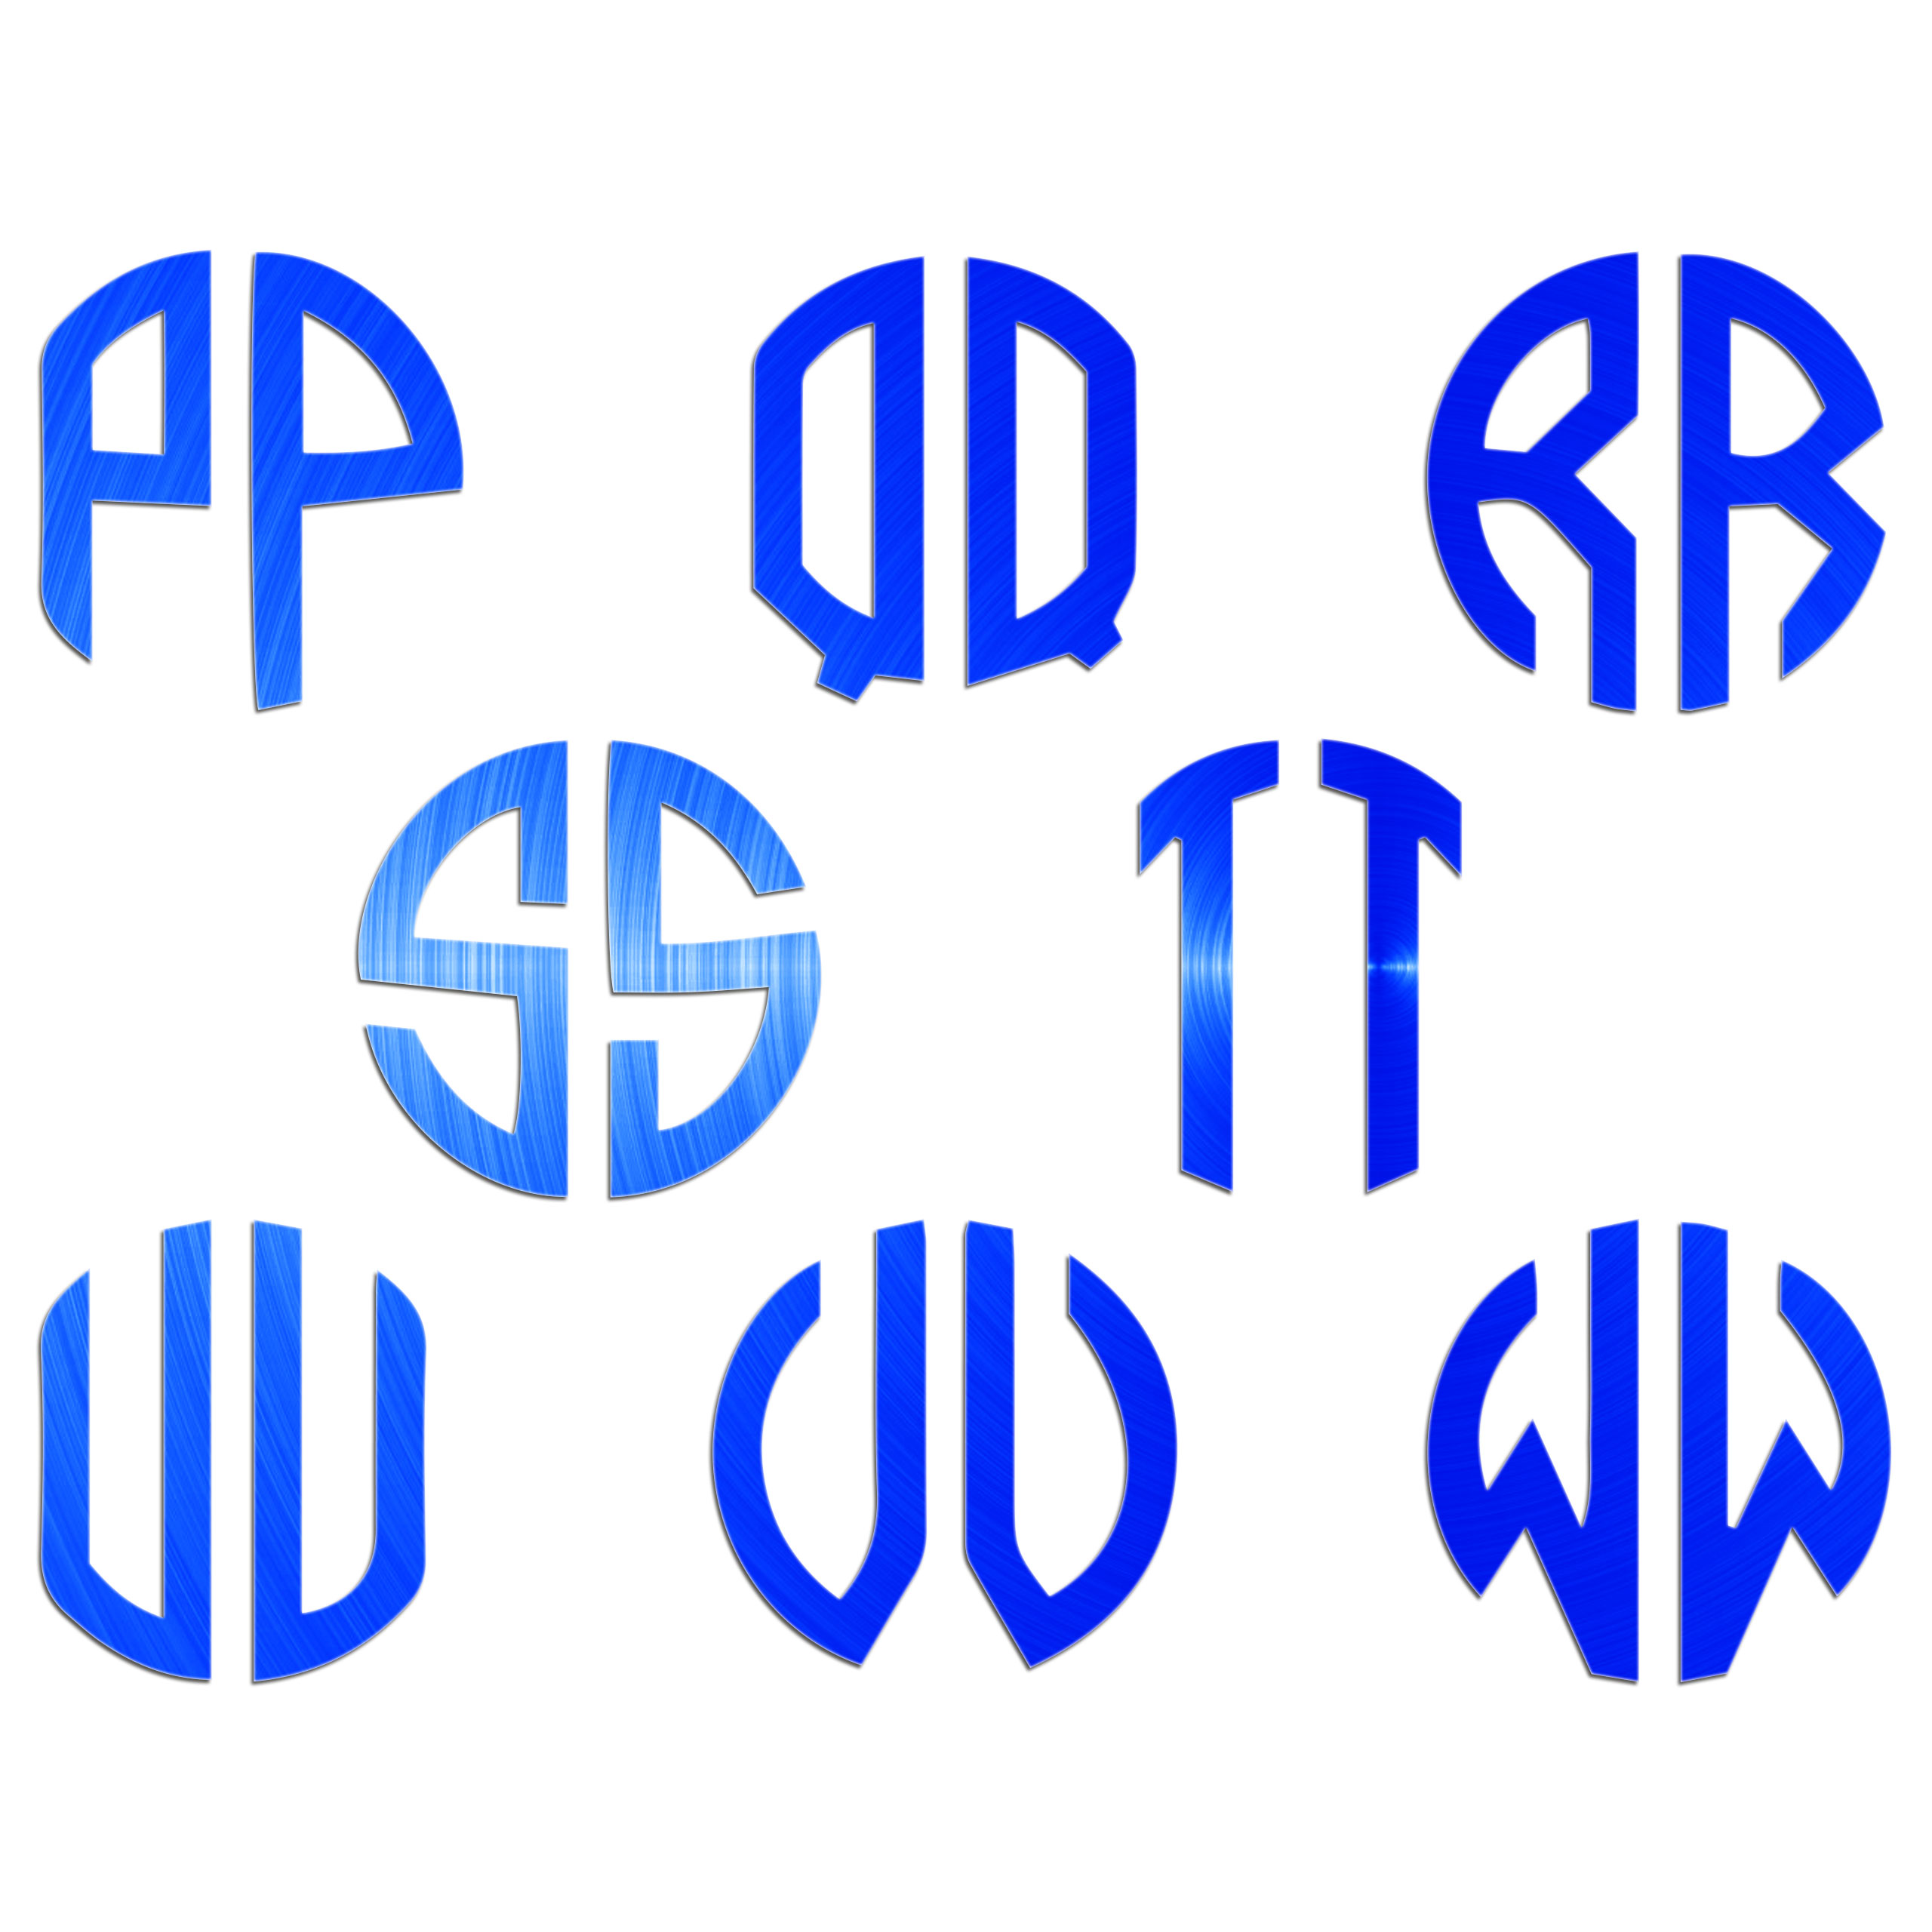 JasonCarlMorgan-JCM-Graphics-Personalised-Initials-Monogram-Sticker thumbnail 12